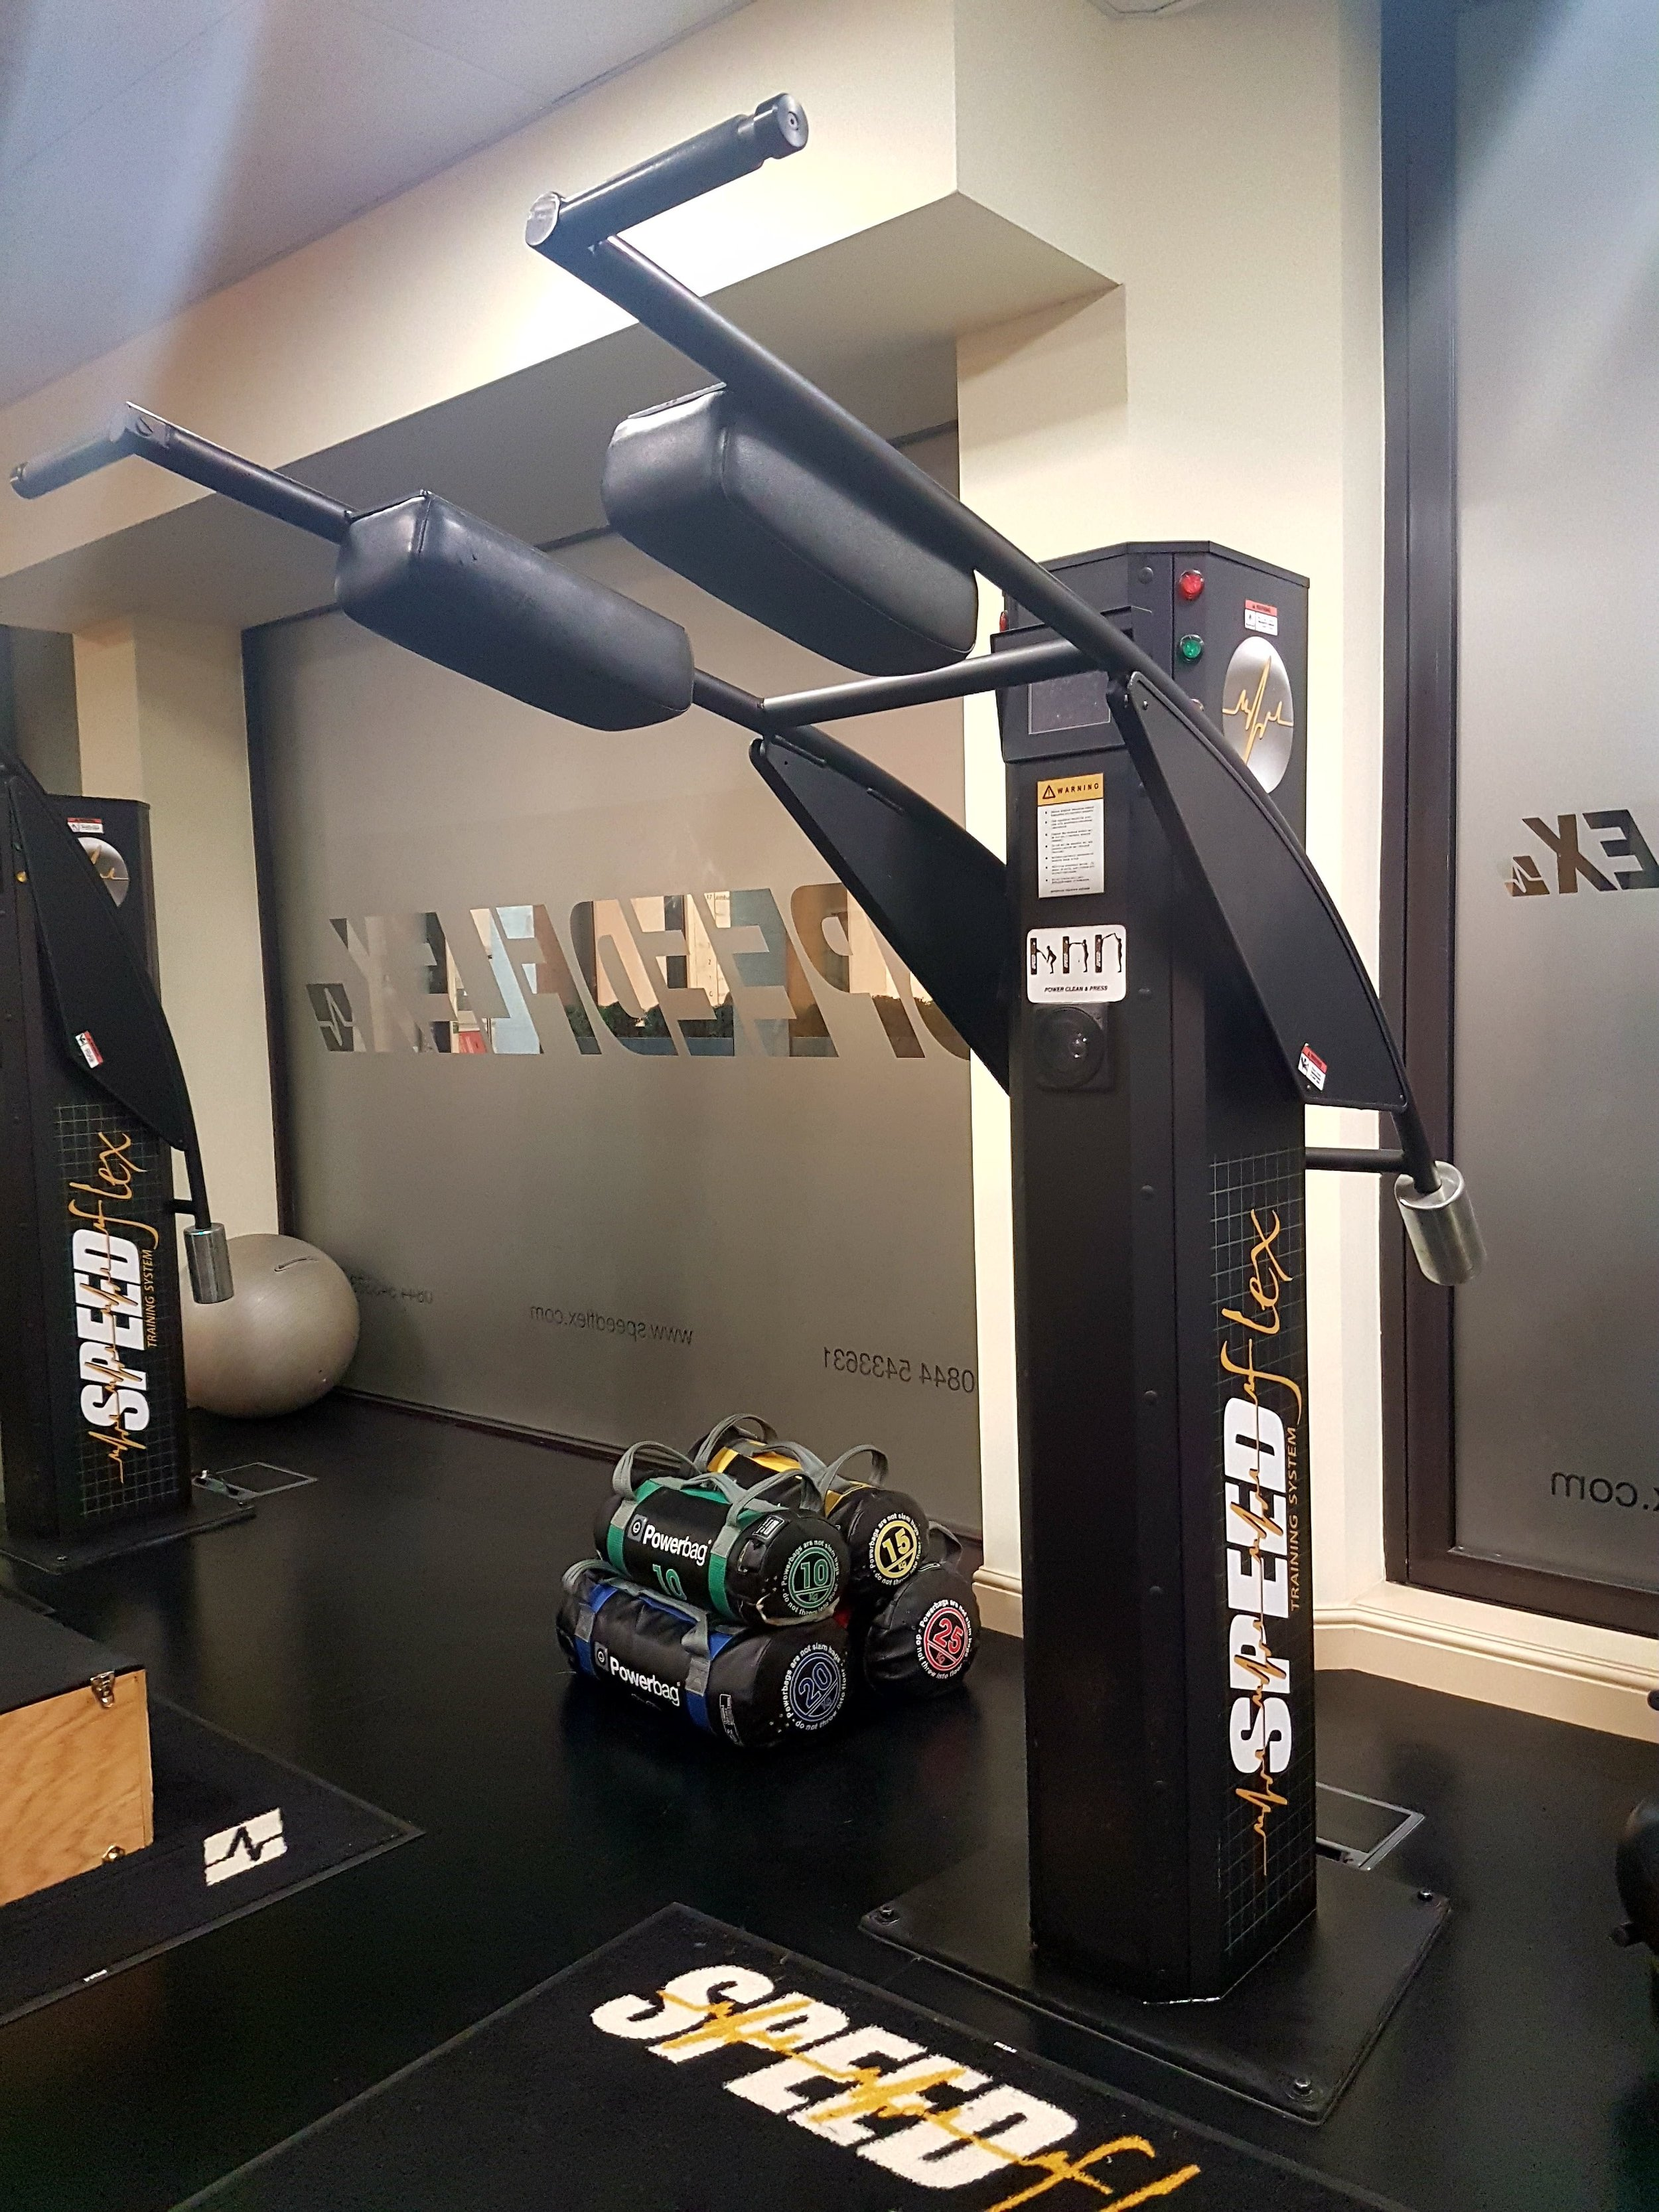 The Speedflex machines assist functional movement and aid in learning correct movement patterns